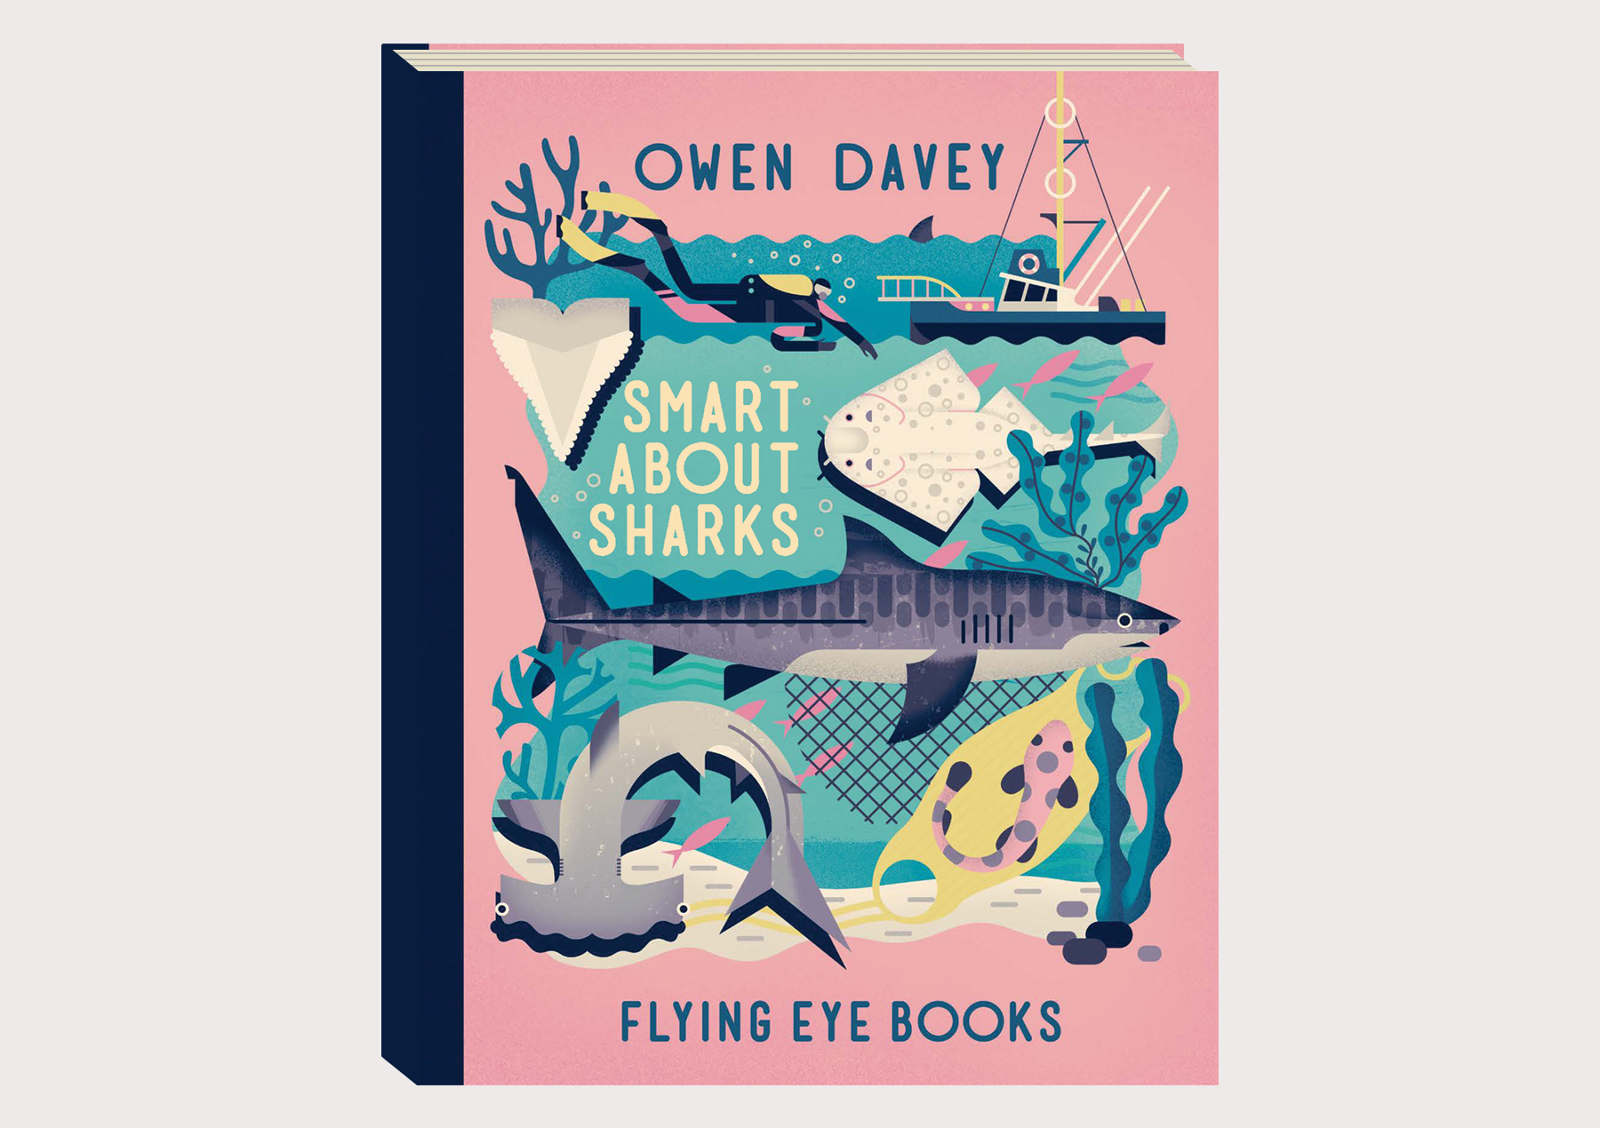 Smart-About-Sharks-Book_1600_c.jpg